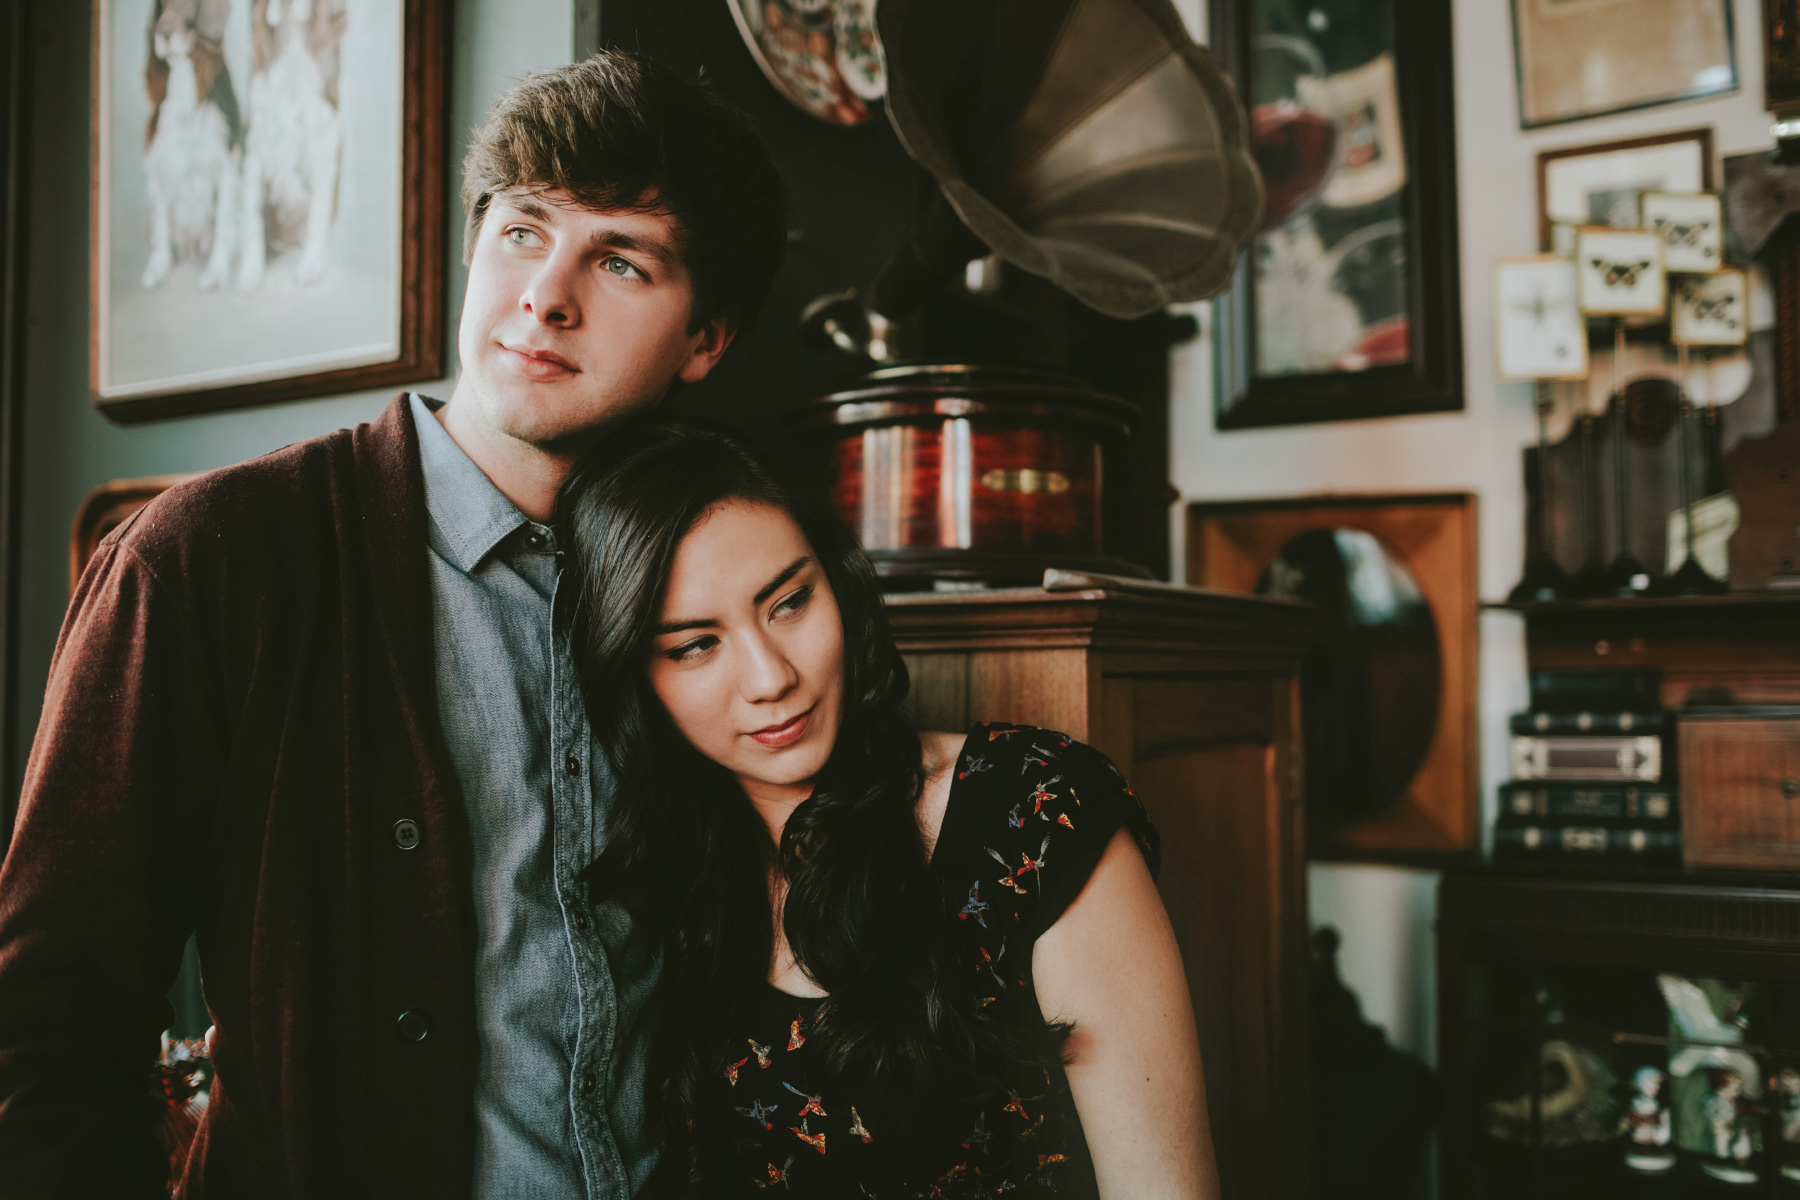 Coffee shop and antique store engagement session at Cafe Bassan in San Diego